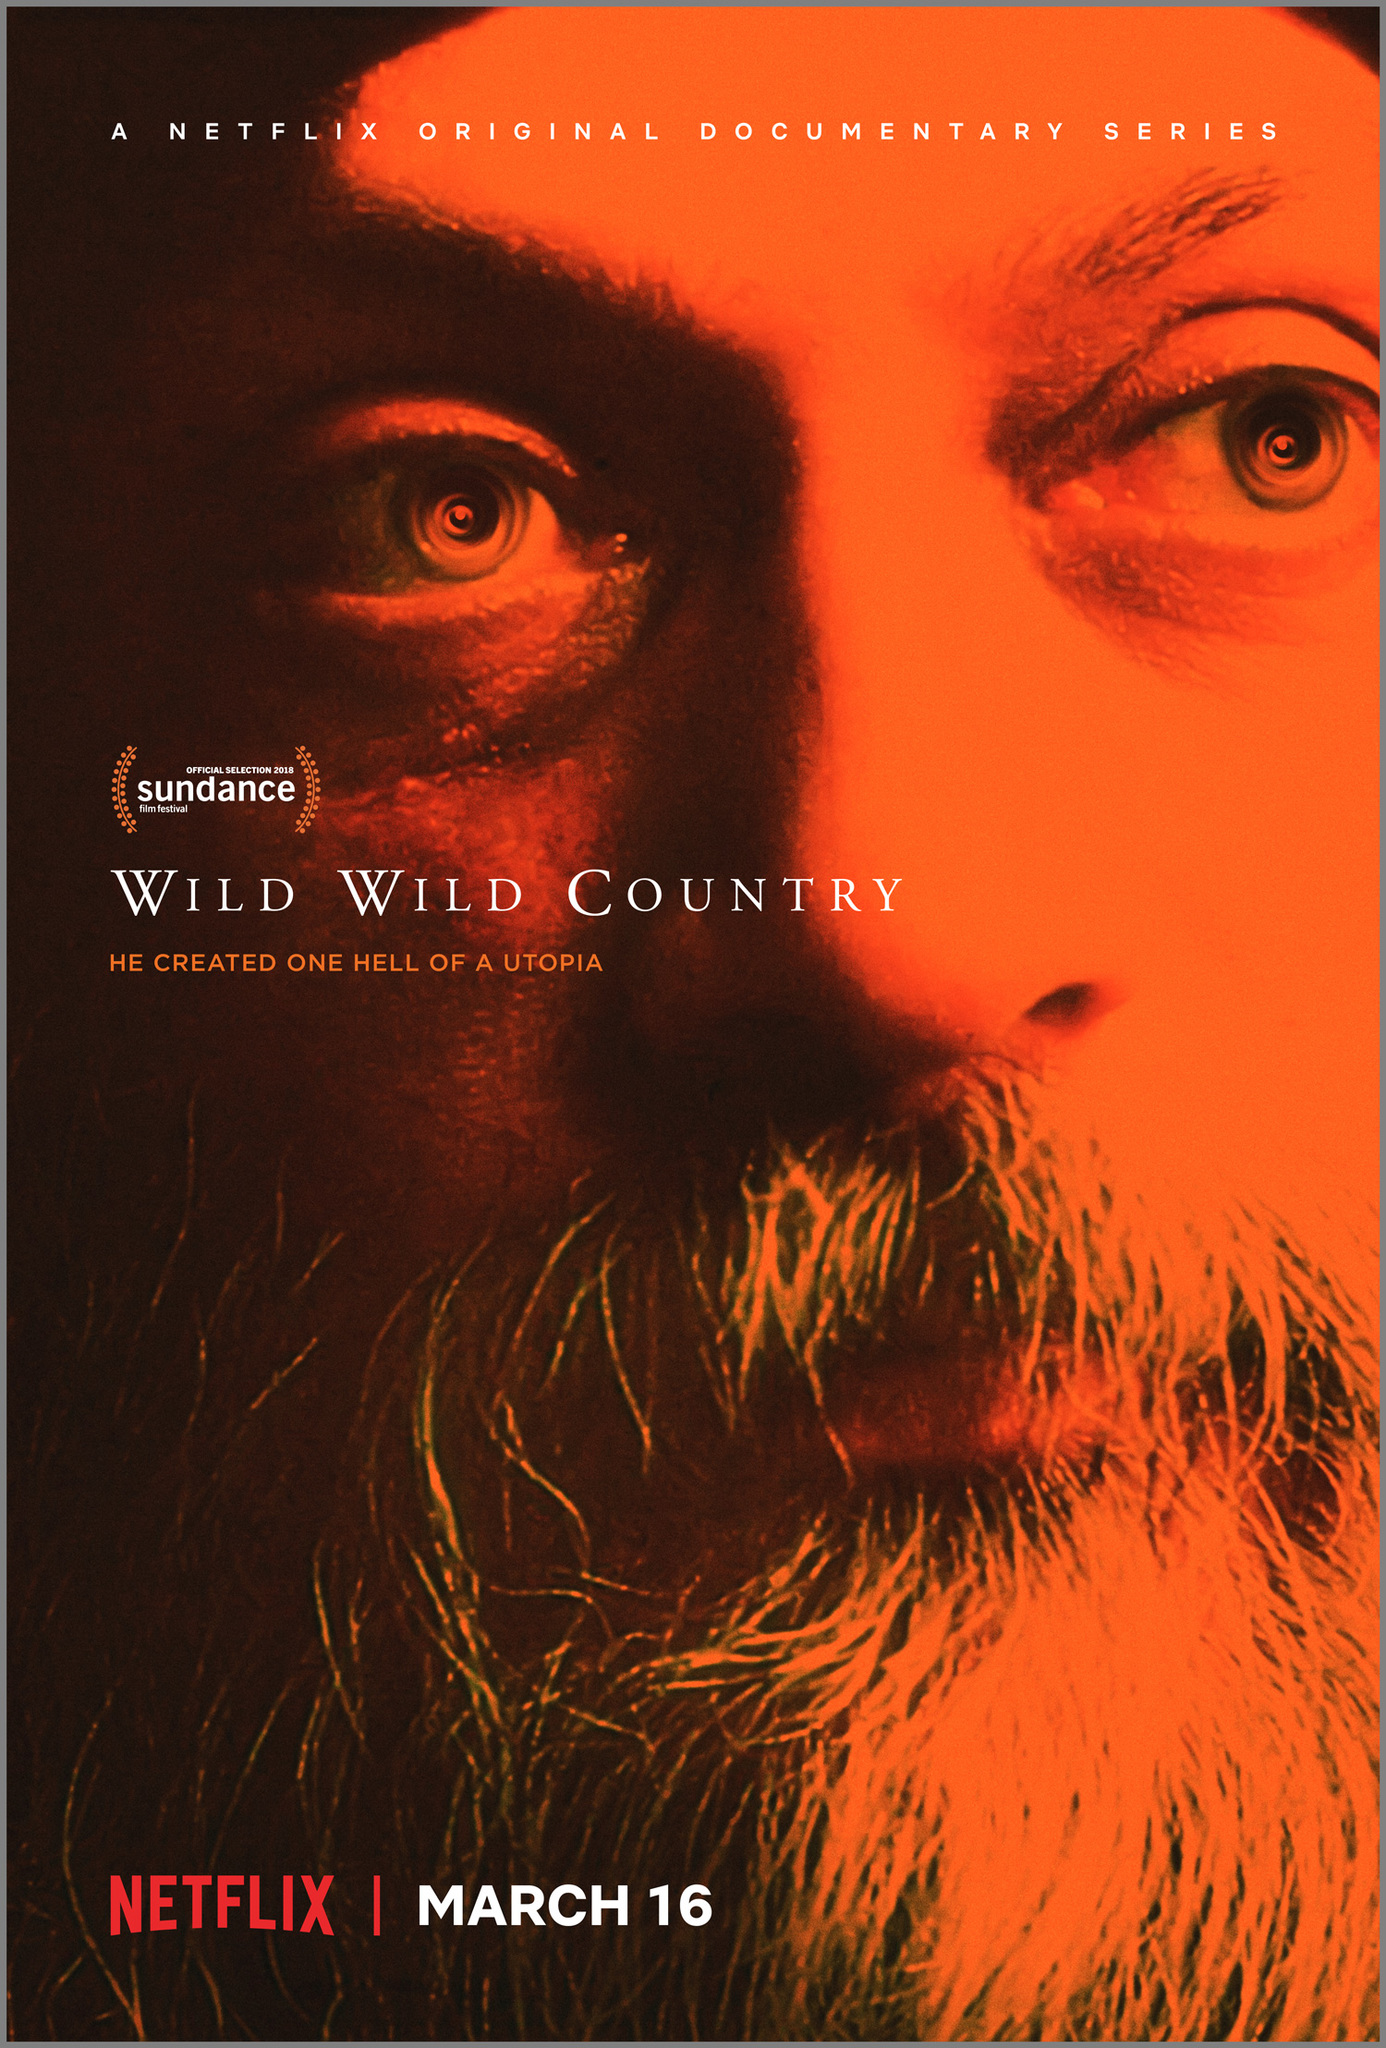 The New Docu-Series You Should Watch wild wild country